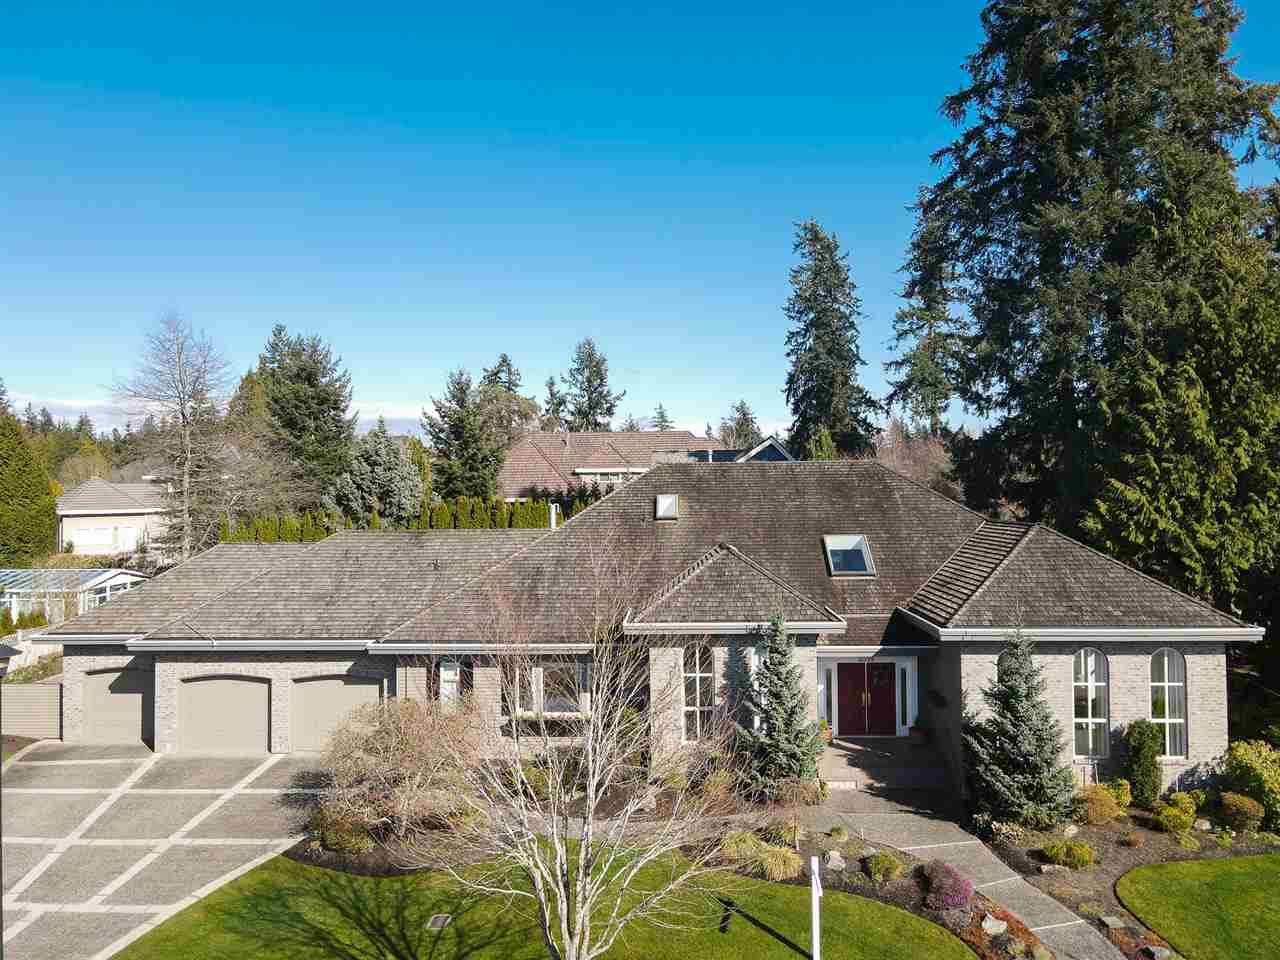 Main Photo: 2318 CHANTRELL PARK Drive in Surrey: Elgin Chantrell House for sale (South Surrey White Rock)  : MLS®# R2558616